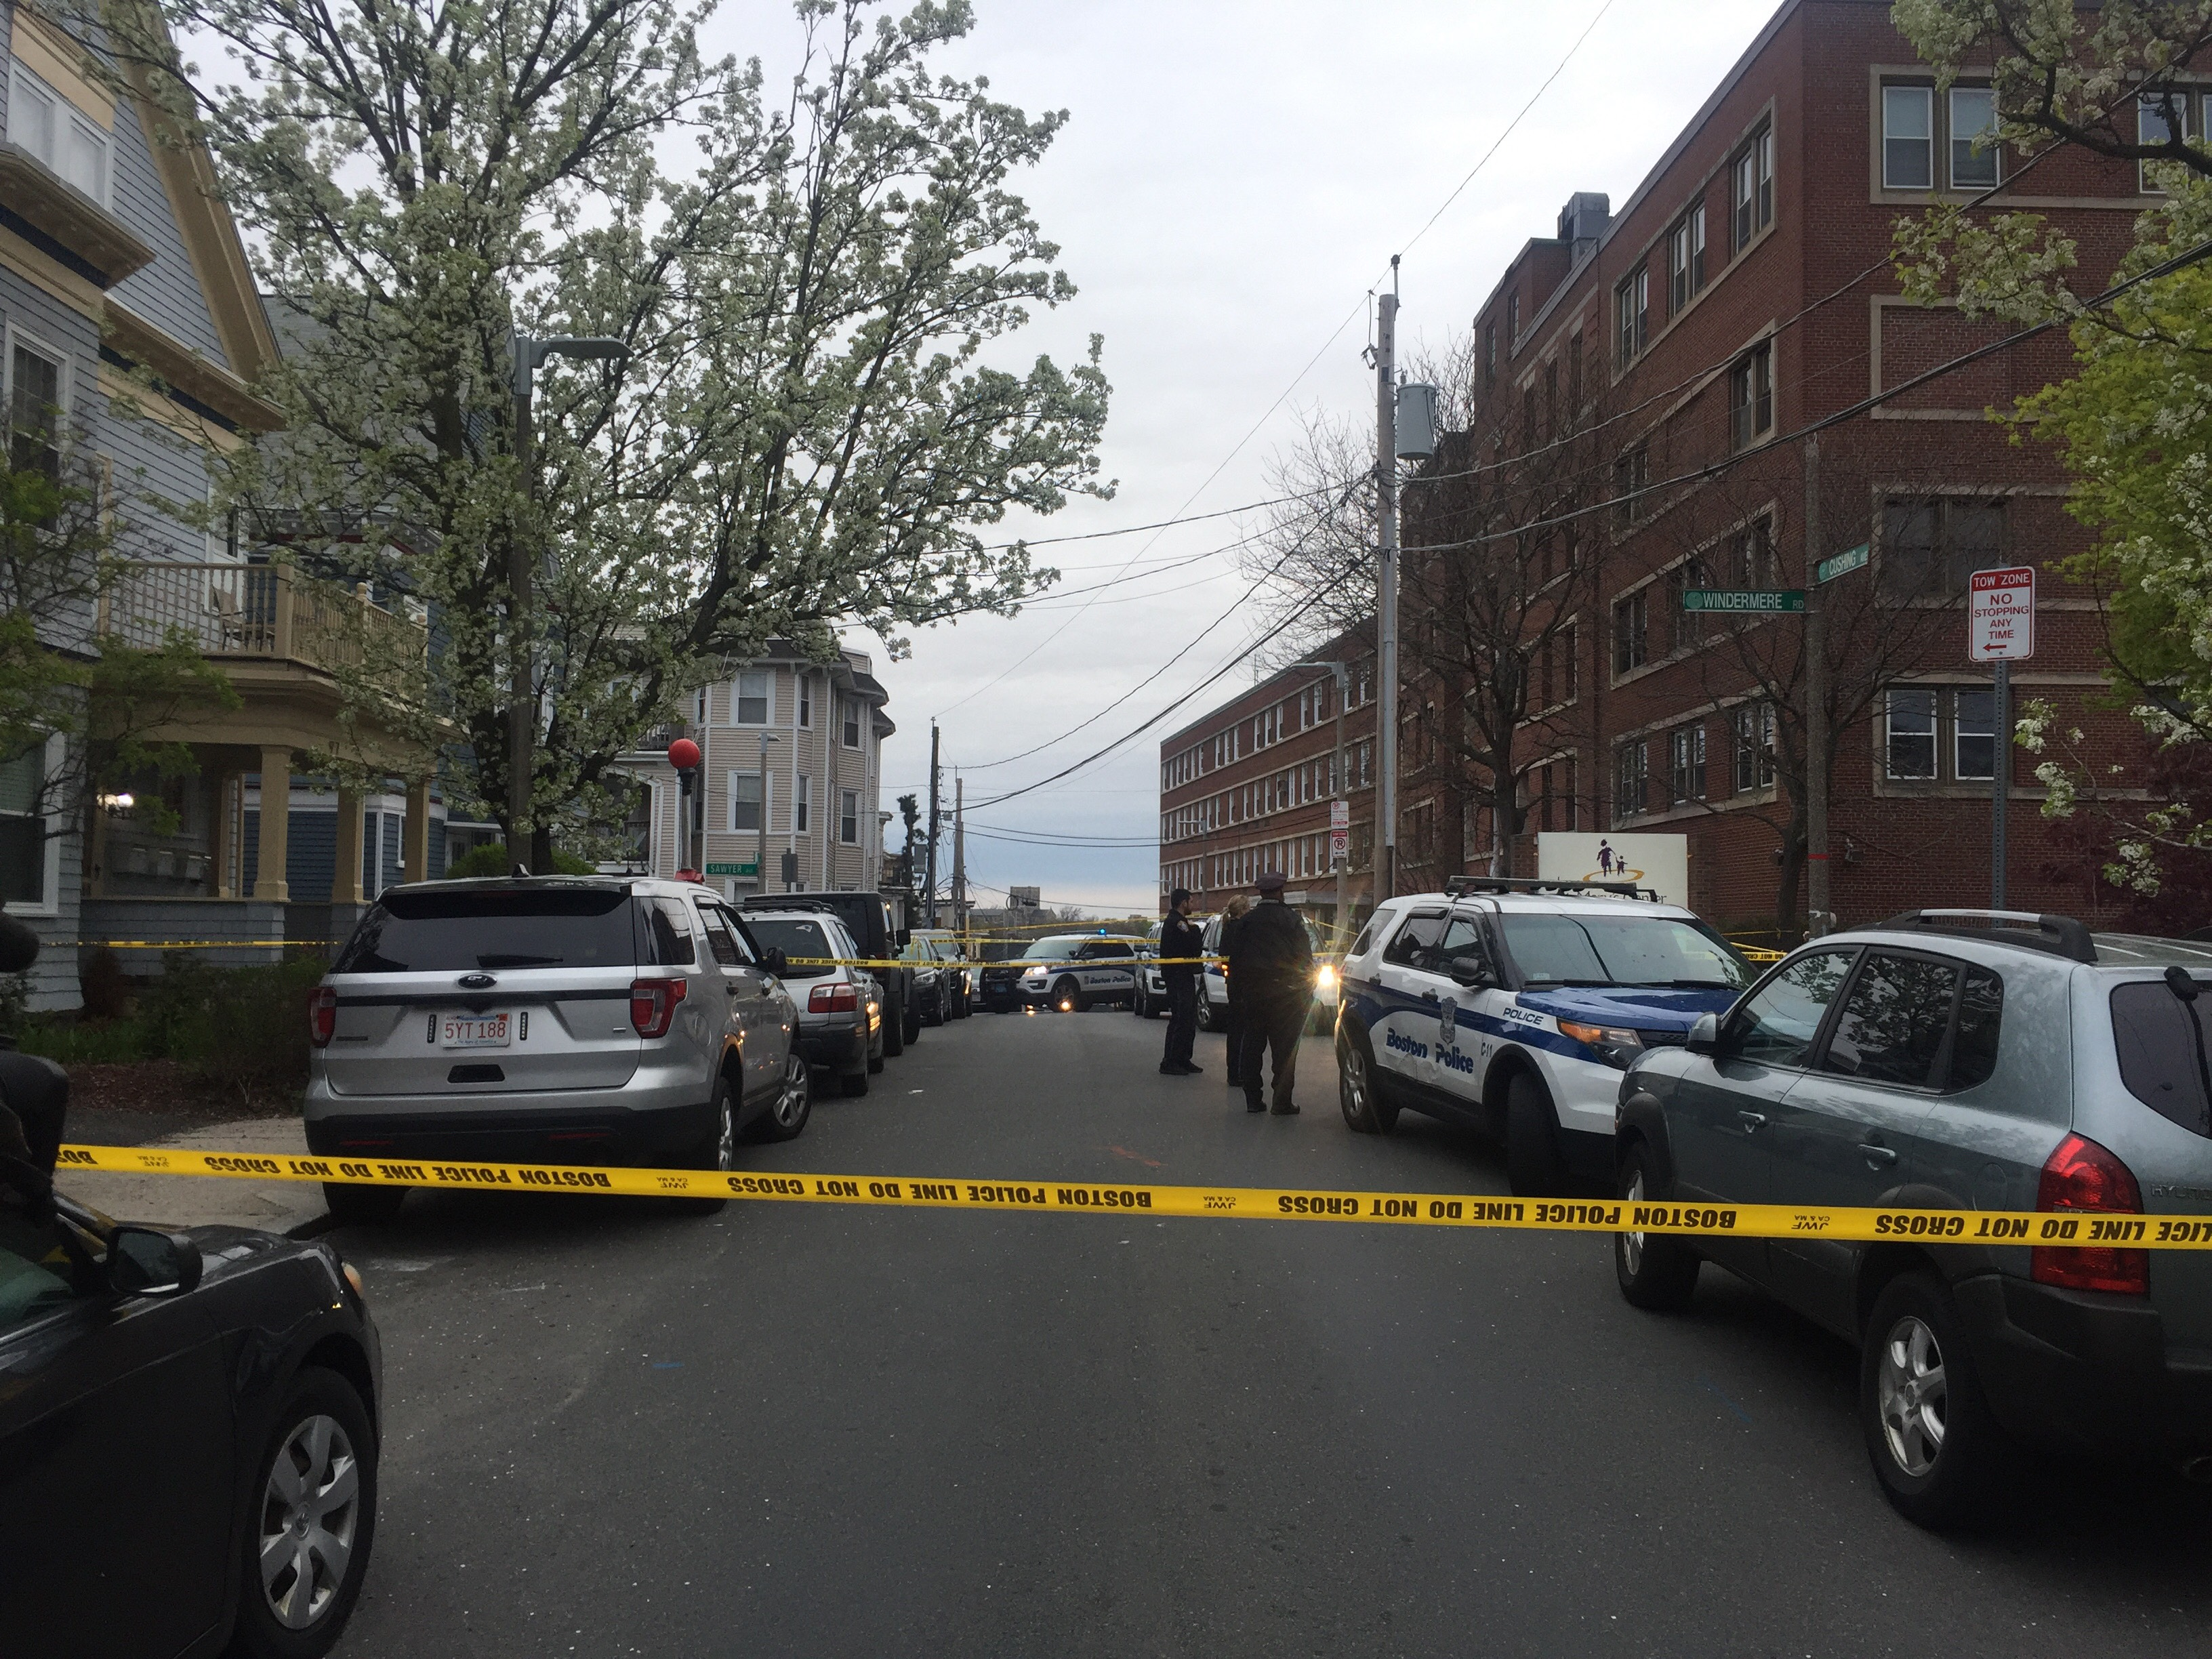 1 man killed, 3 others injured in Dorchester shooting, police say